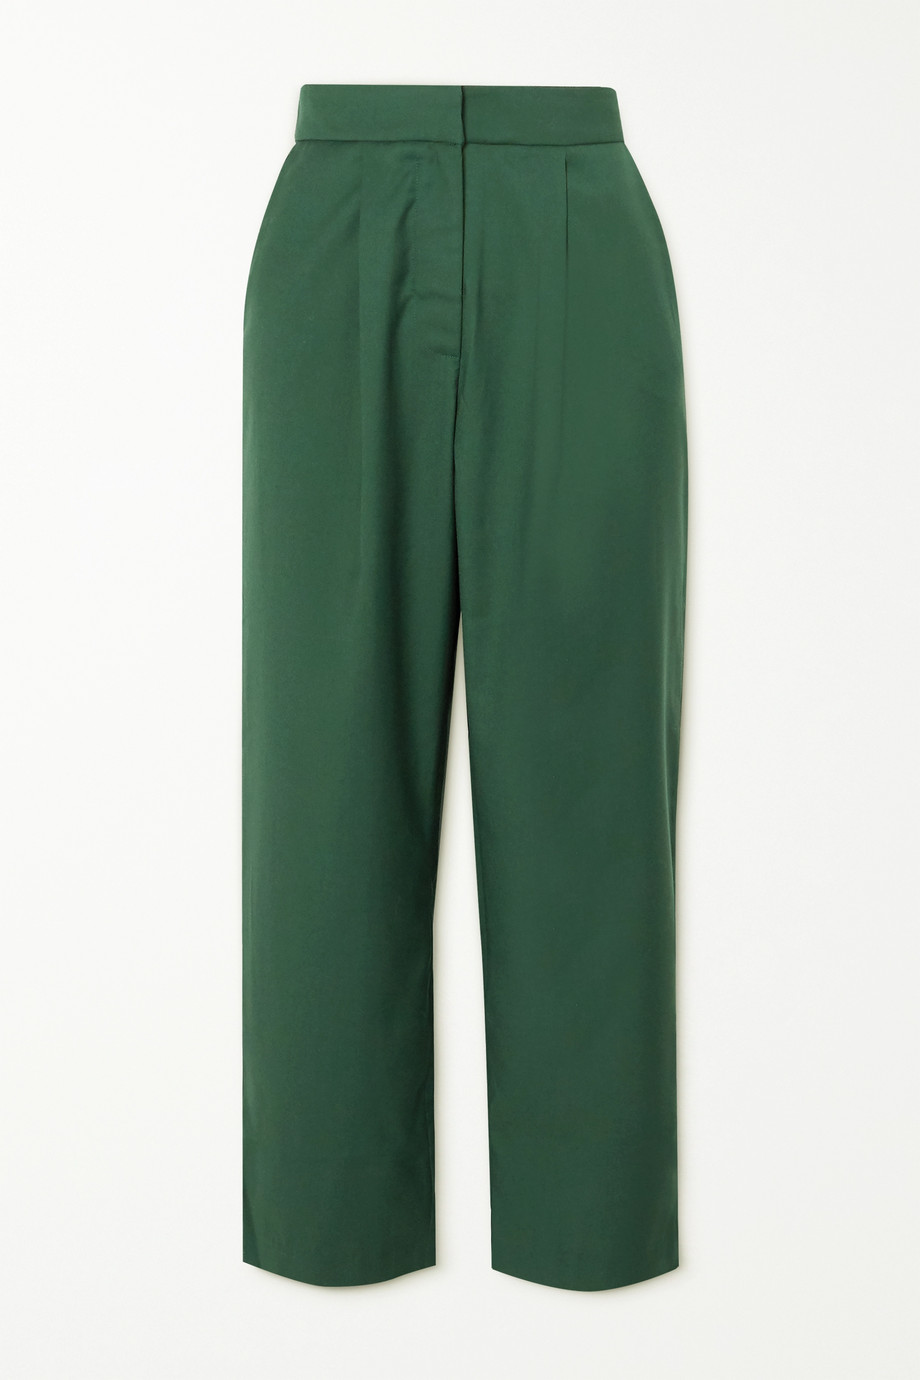 ANNA QUAN Tate cropped twill straight-leg pants